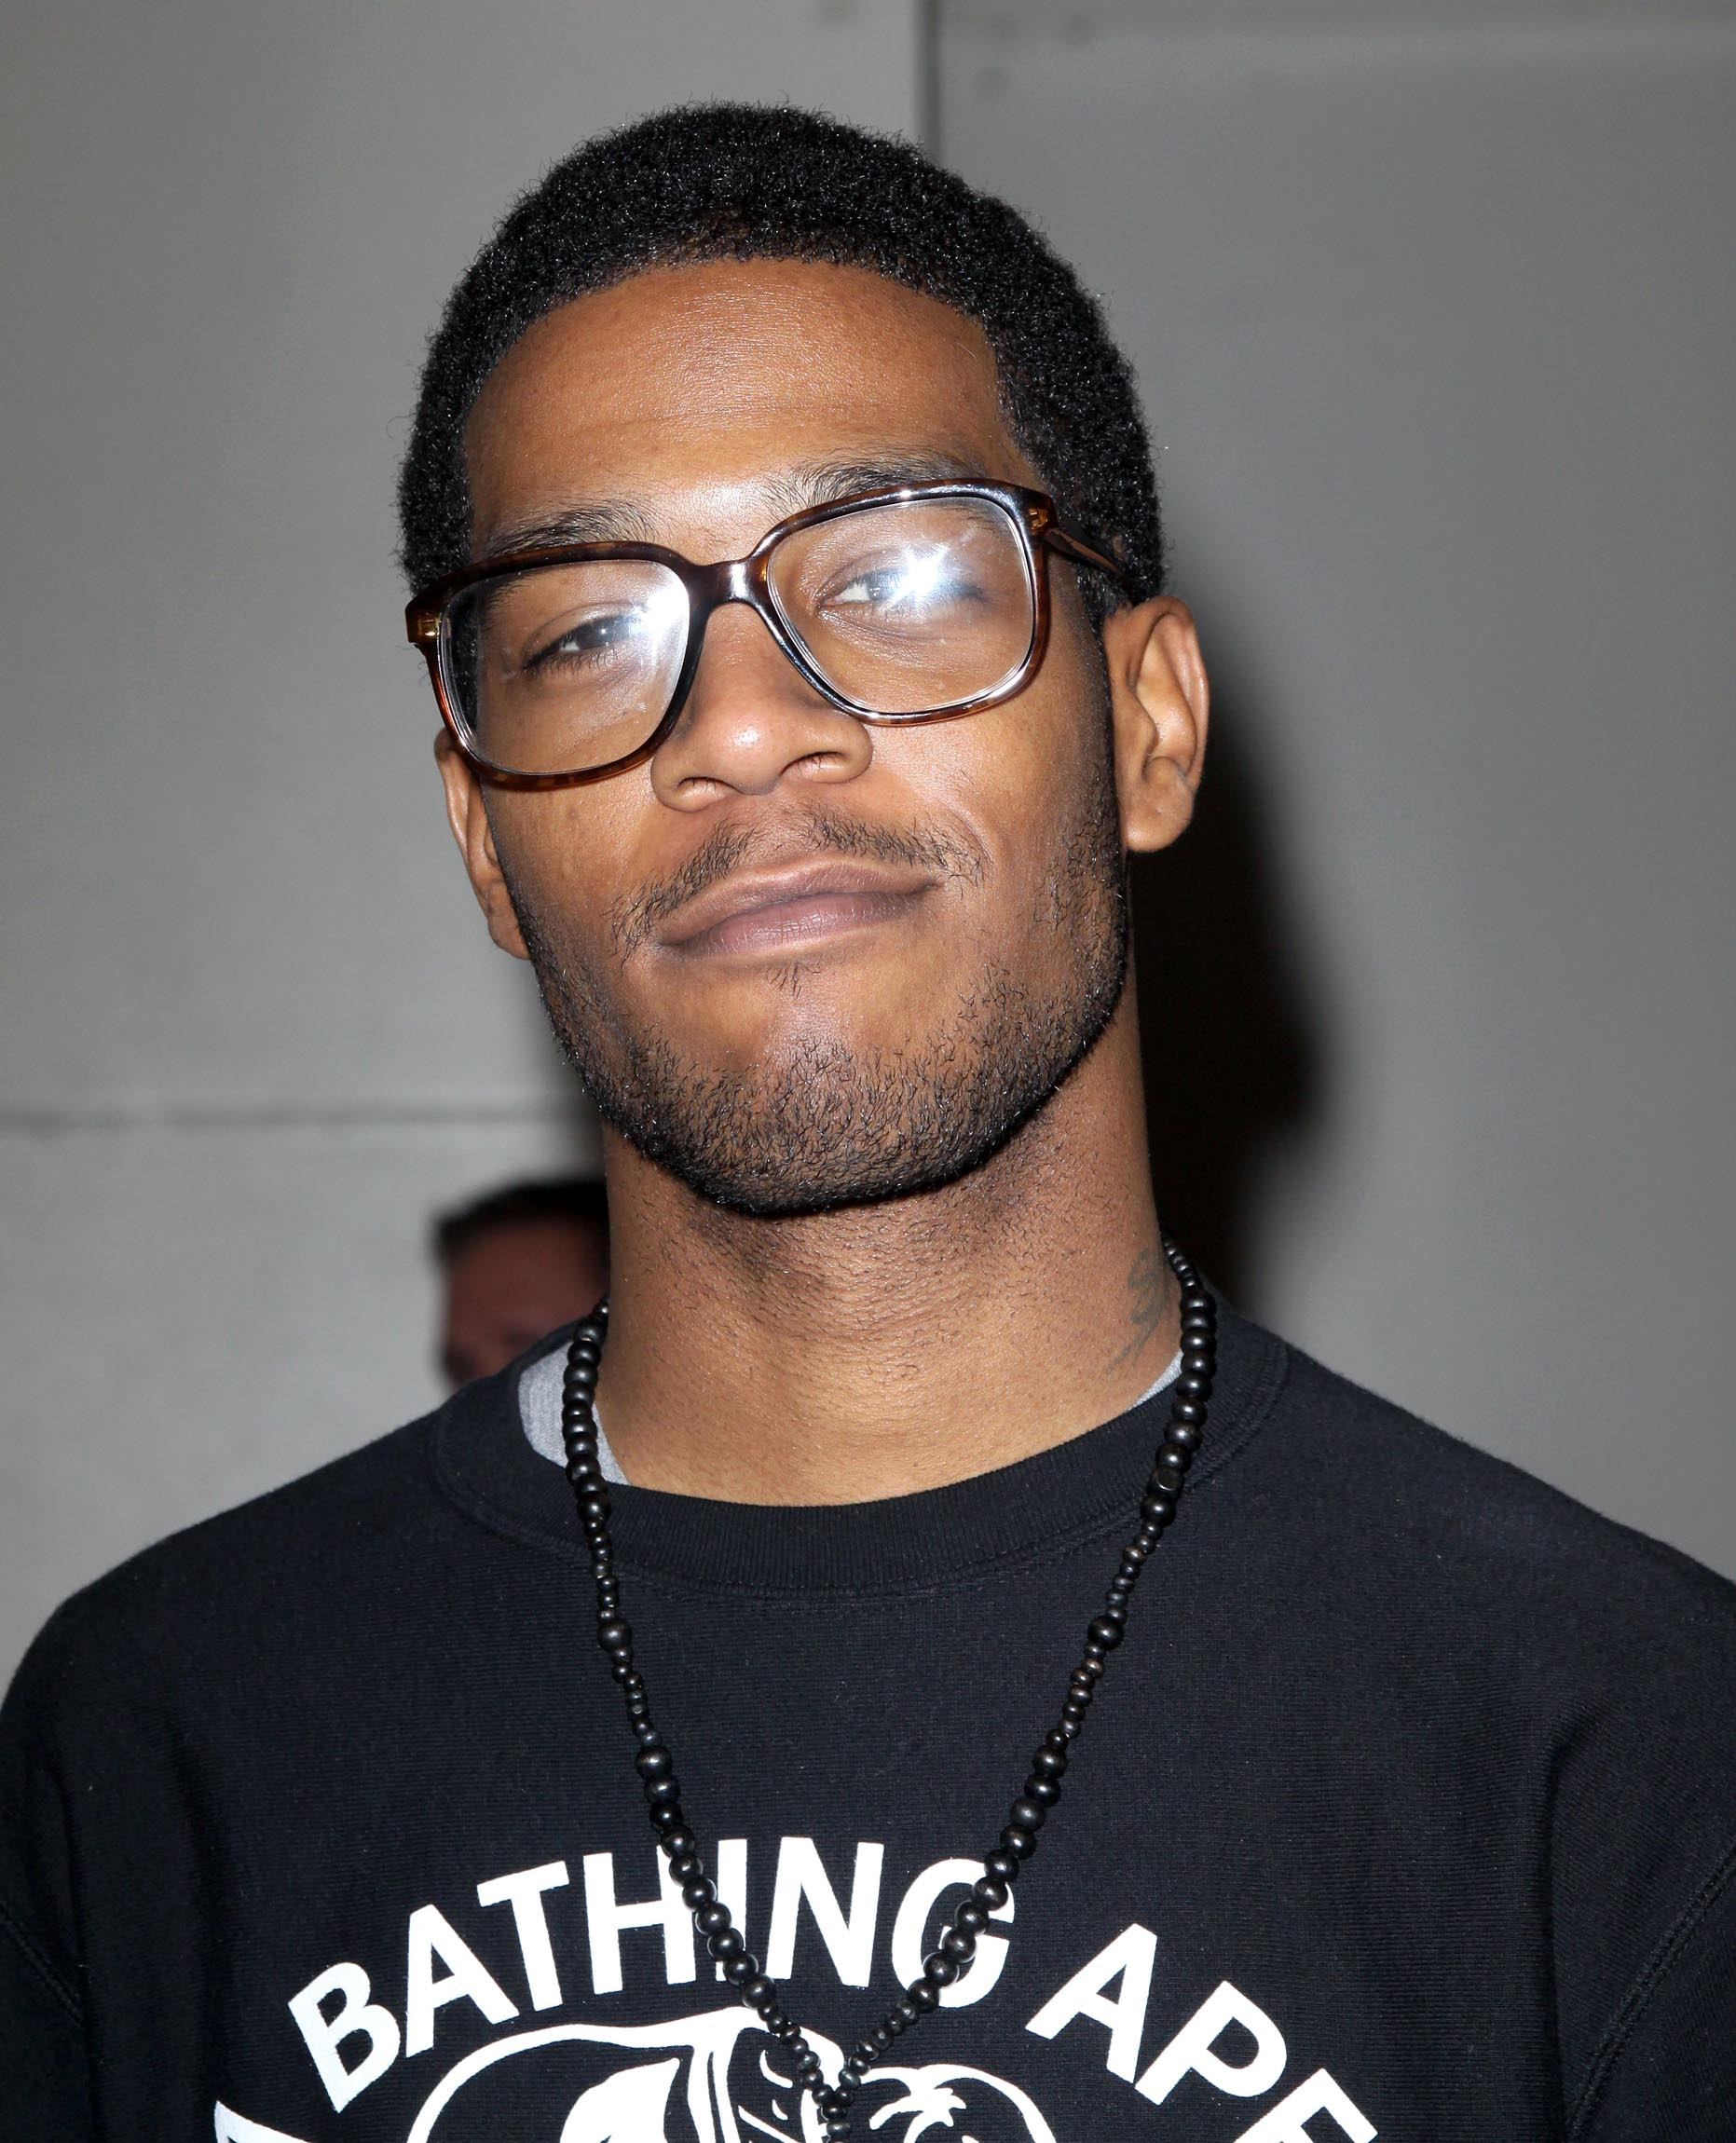 KID CUDI AT AN MTV SHOW